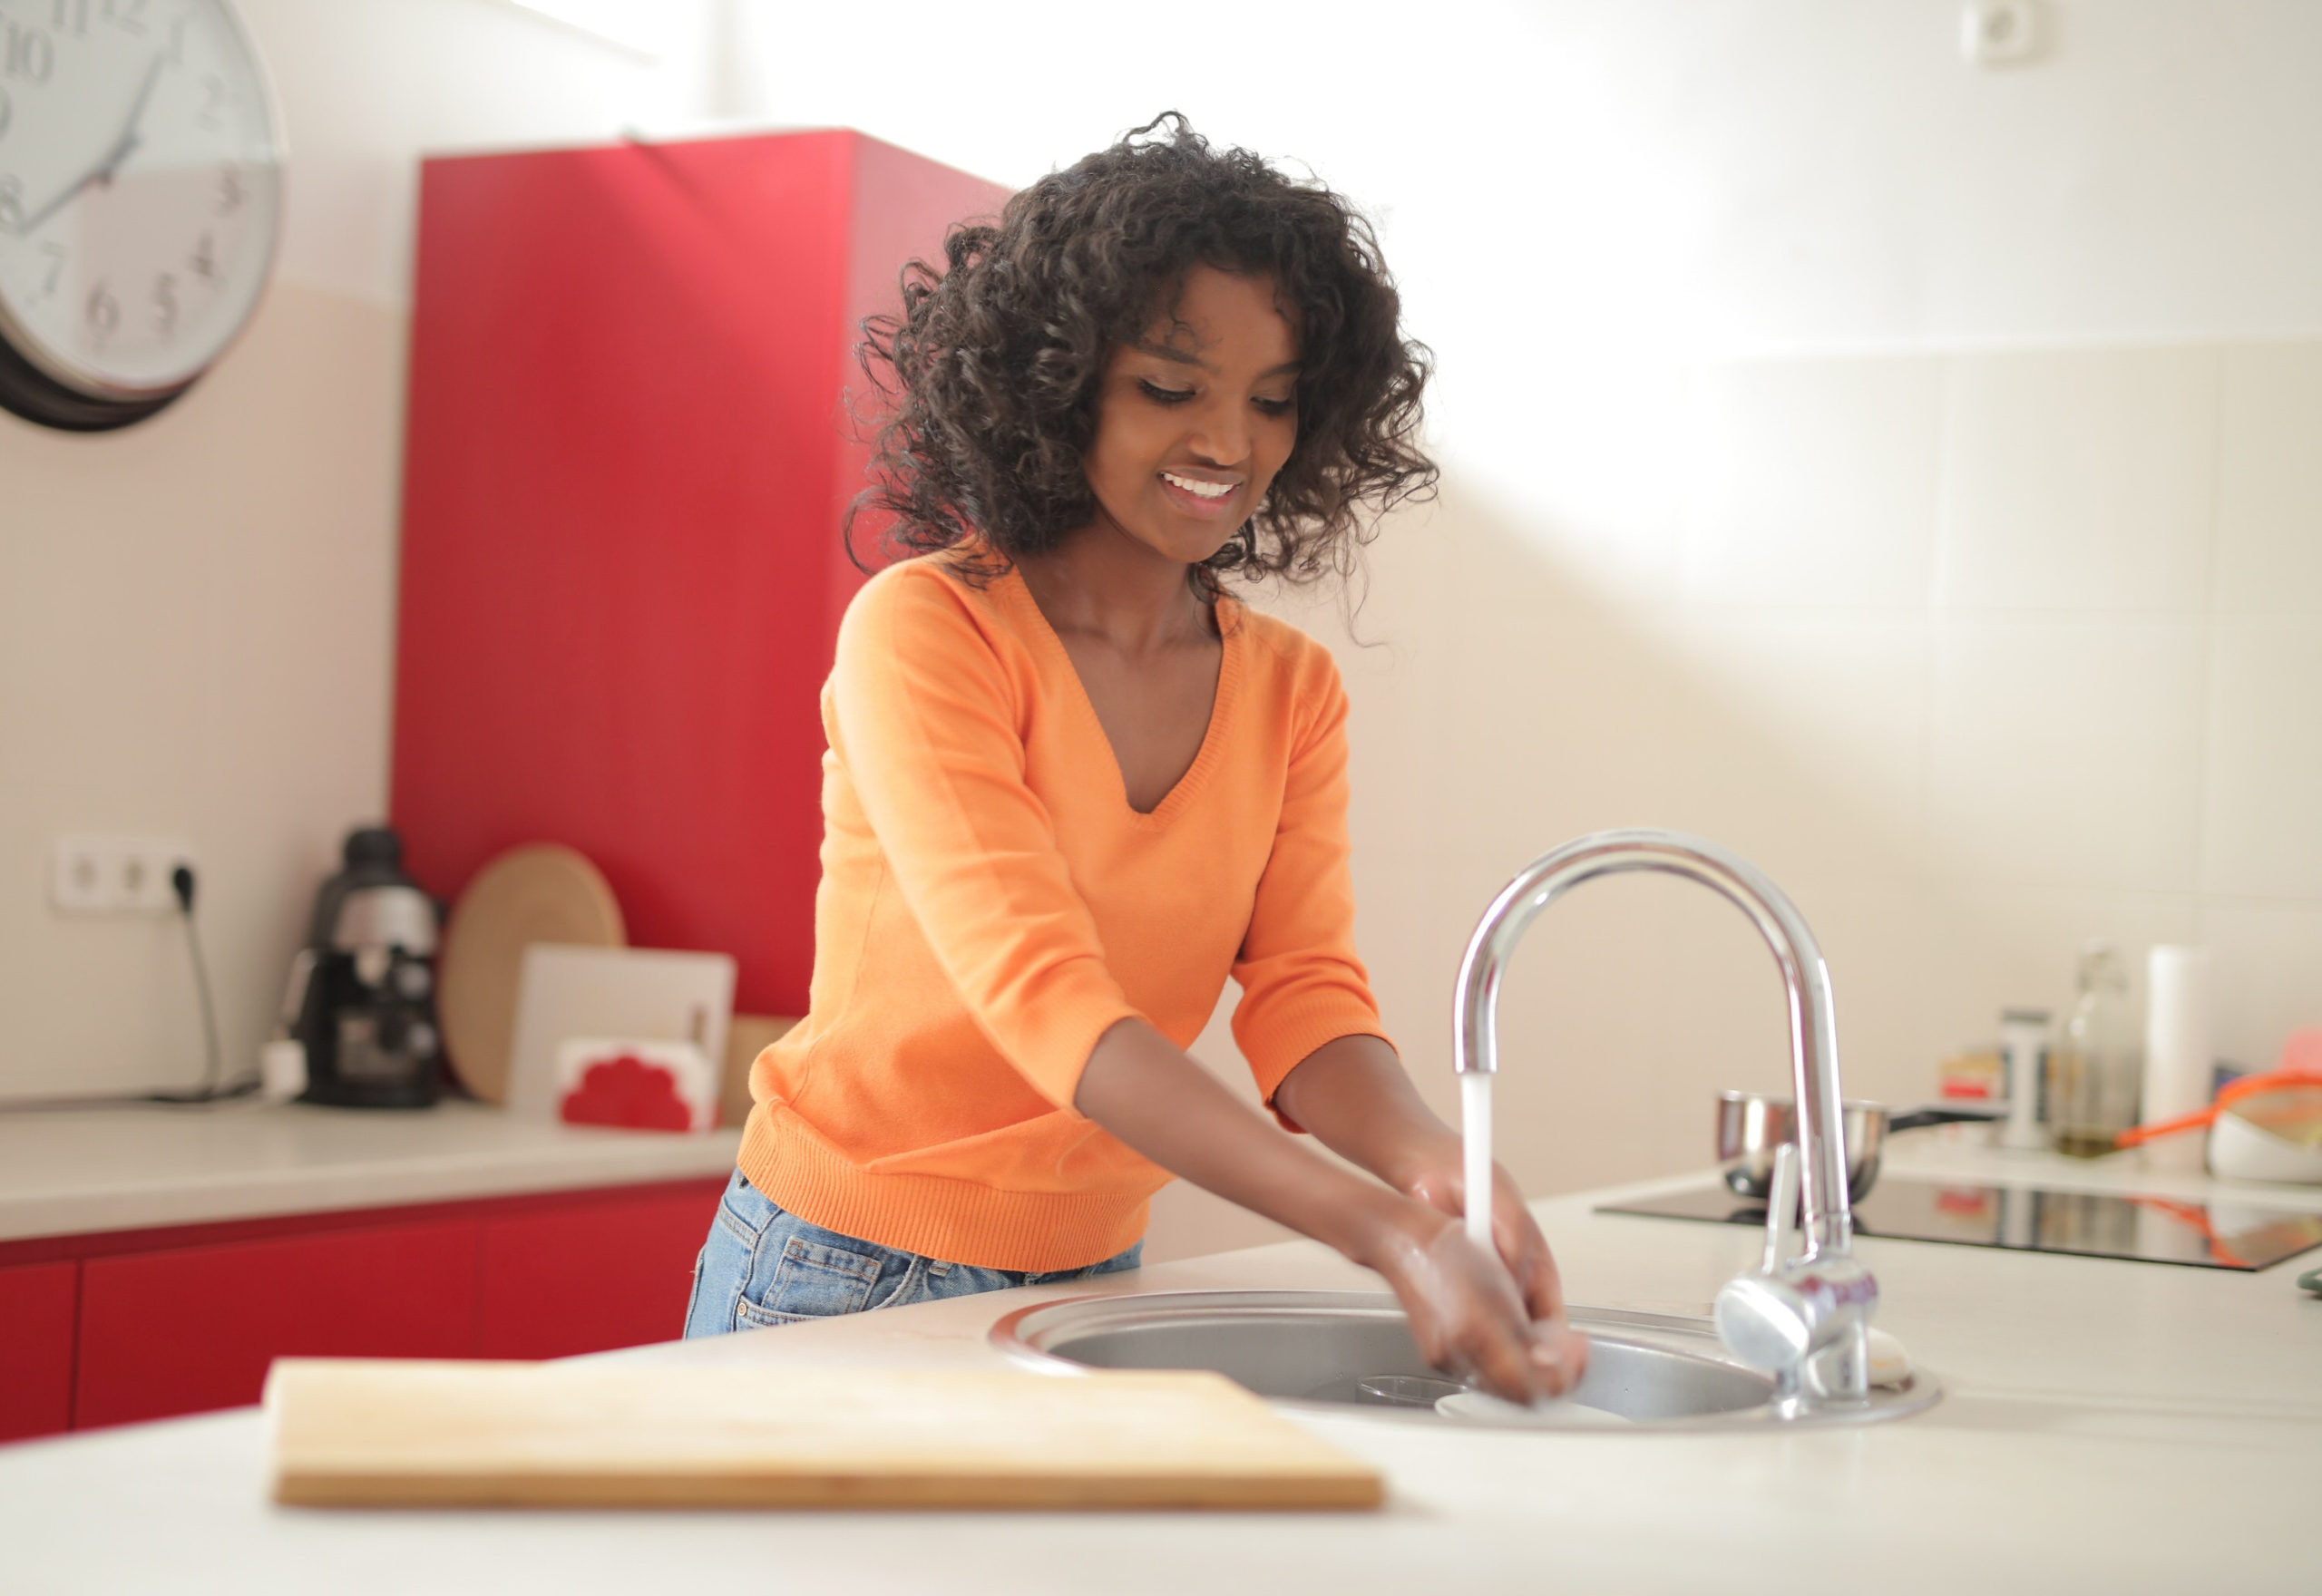 Image of young woman washing hands in sink